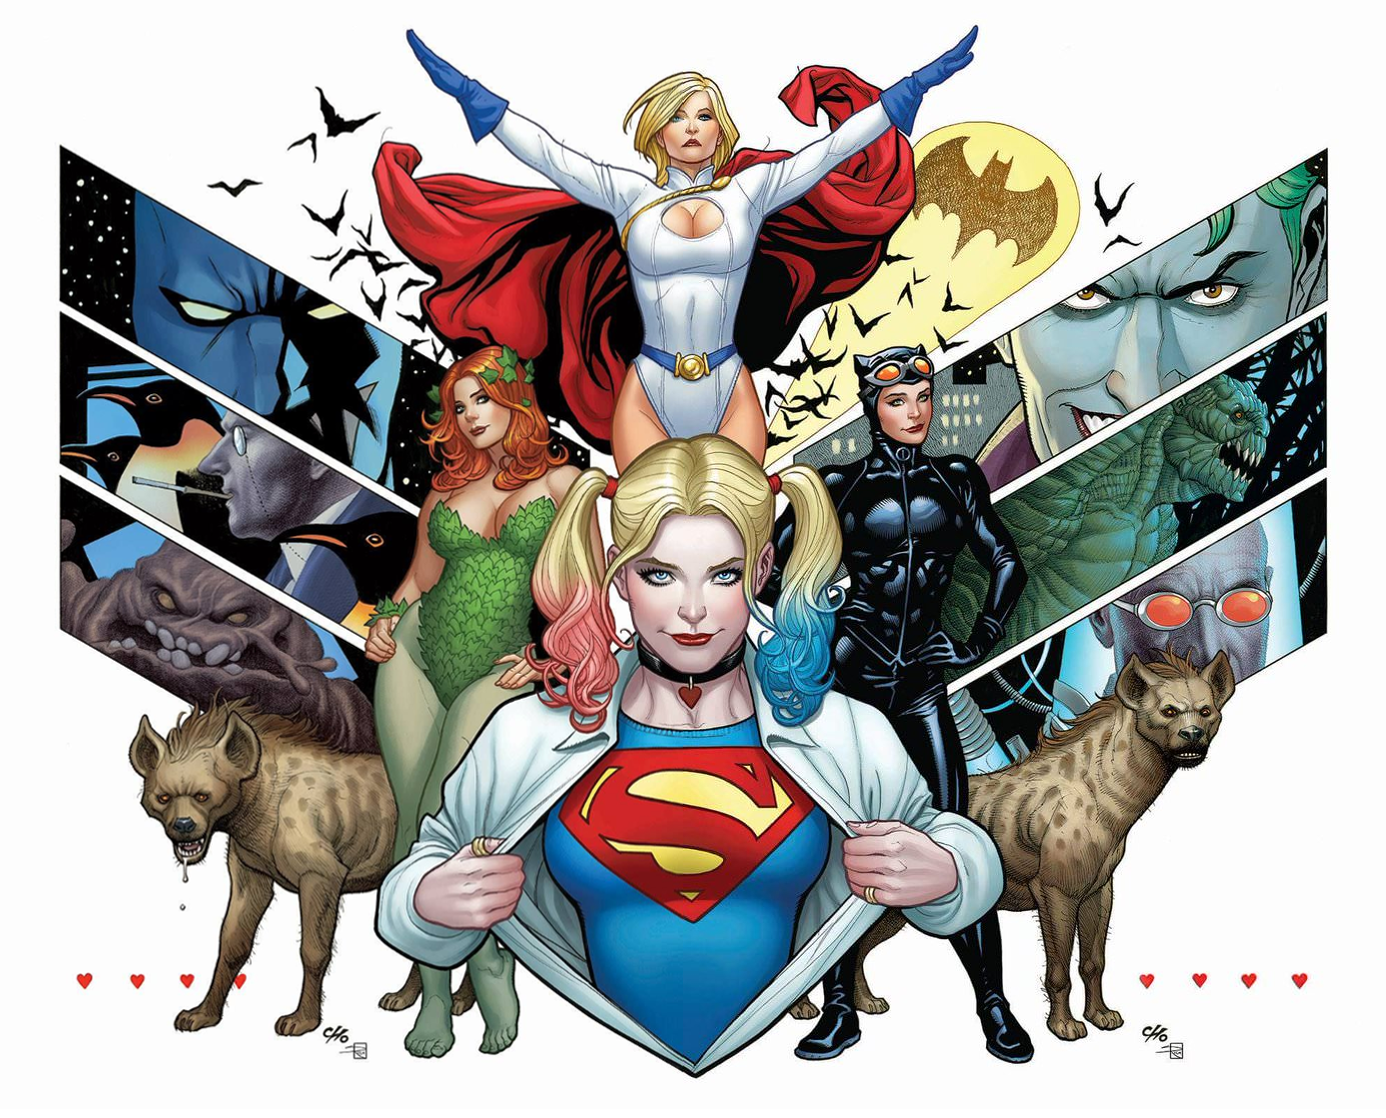 8f4341427e0db Connecting variant cover art by Frank Cho & Sabine Rich for 'Harley Quinn'  issues #41-42, published April 2018 by DC Comics